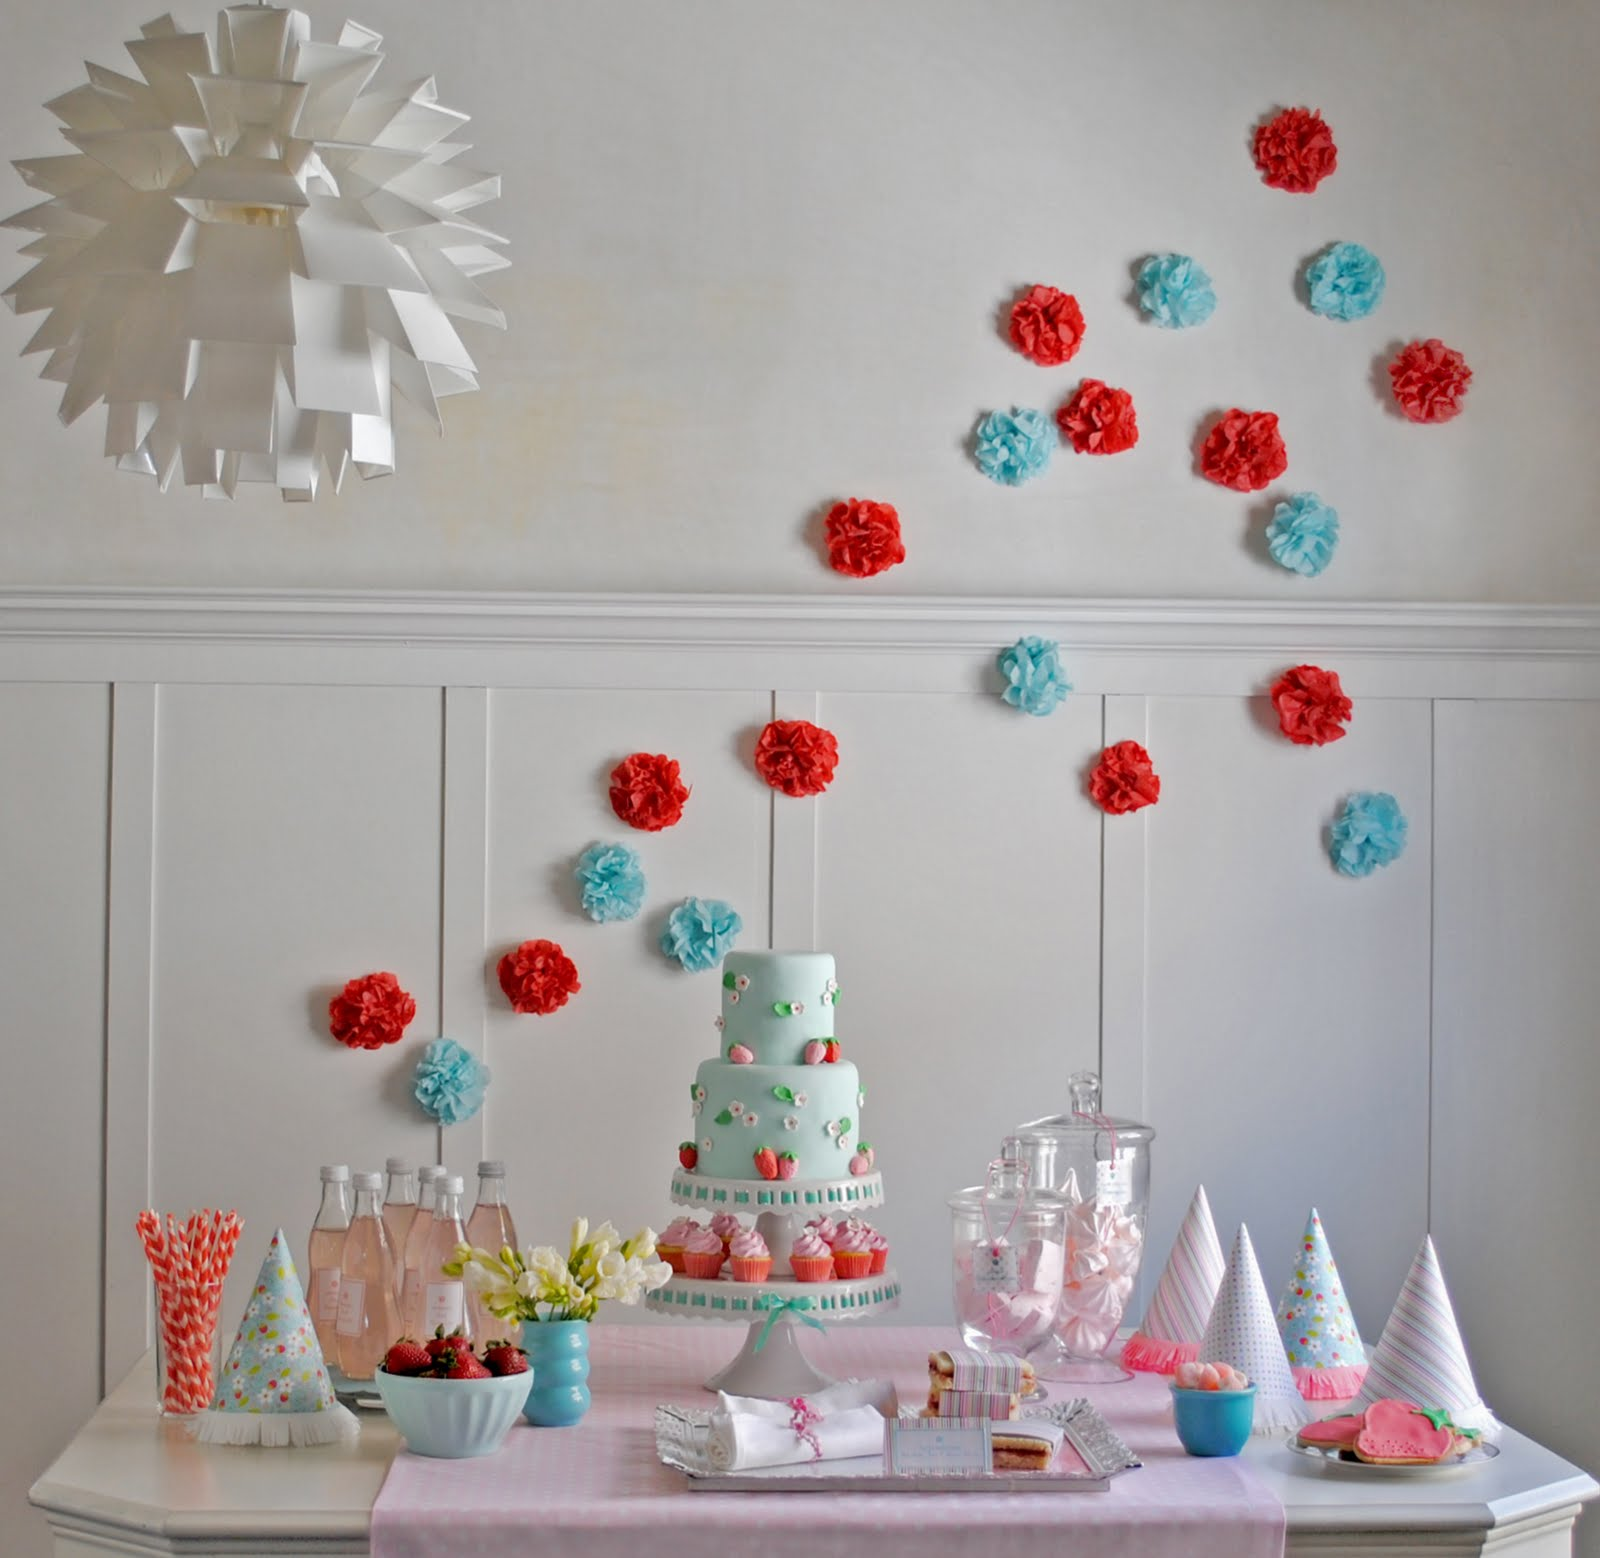 Kara's Party Ideas Strawberry Soiree Birthday Party | Kara ...